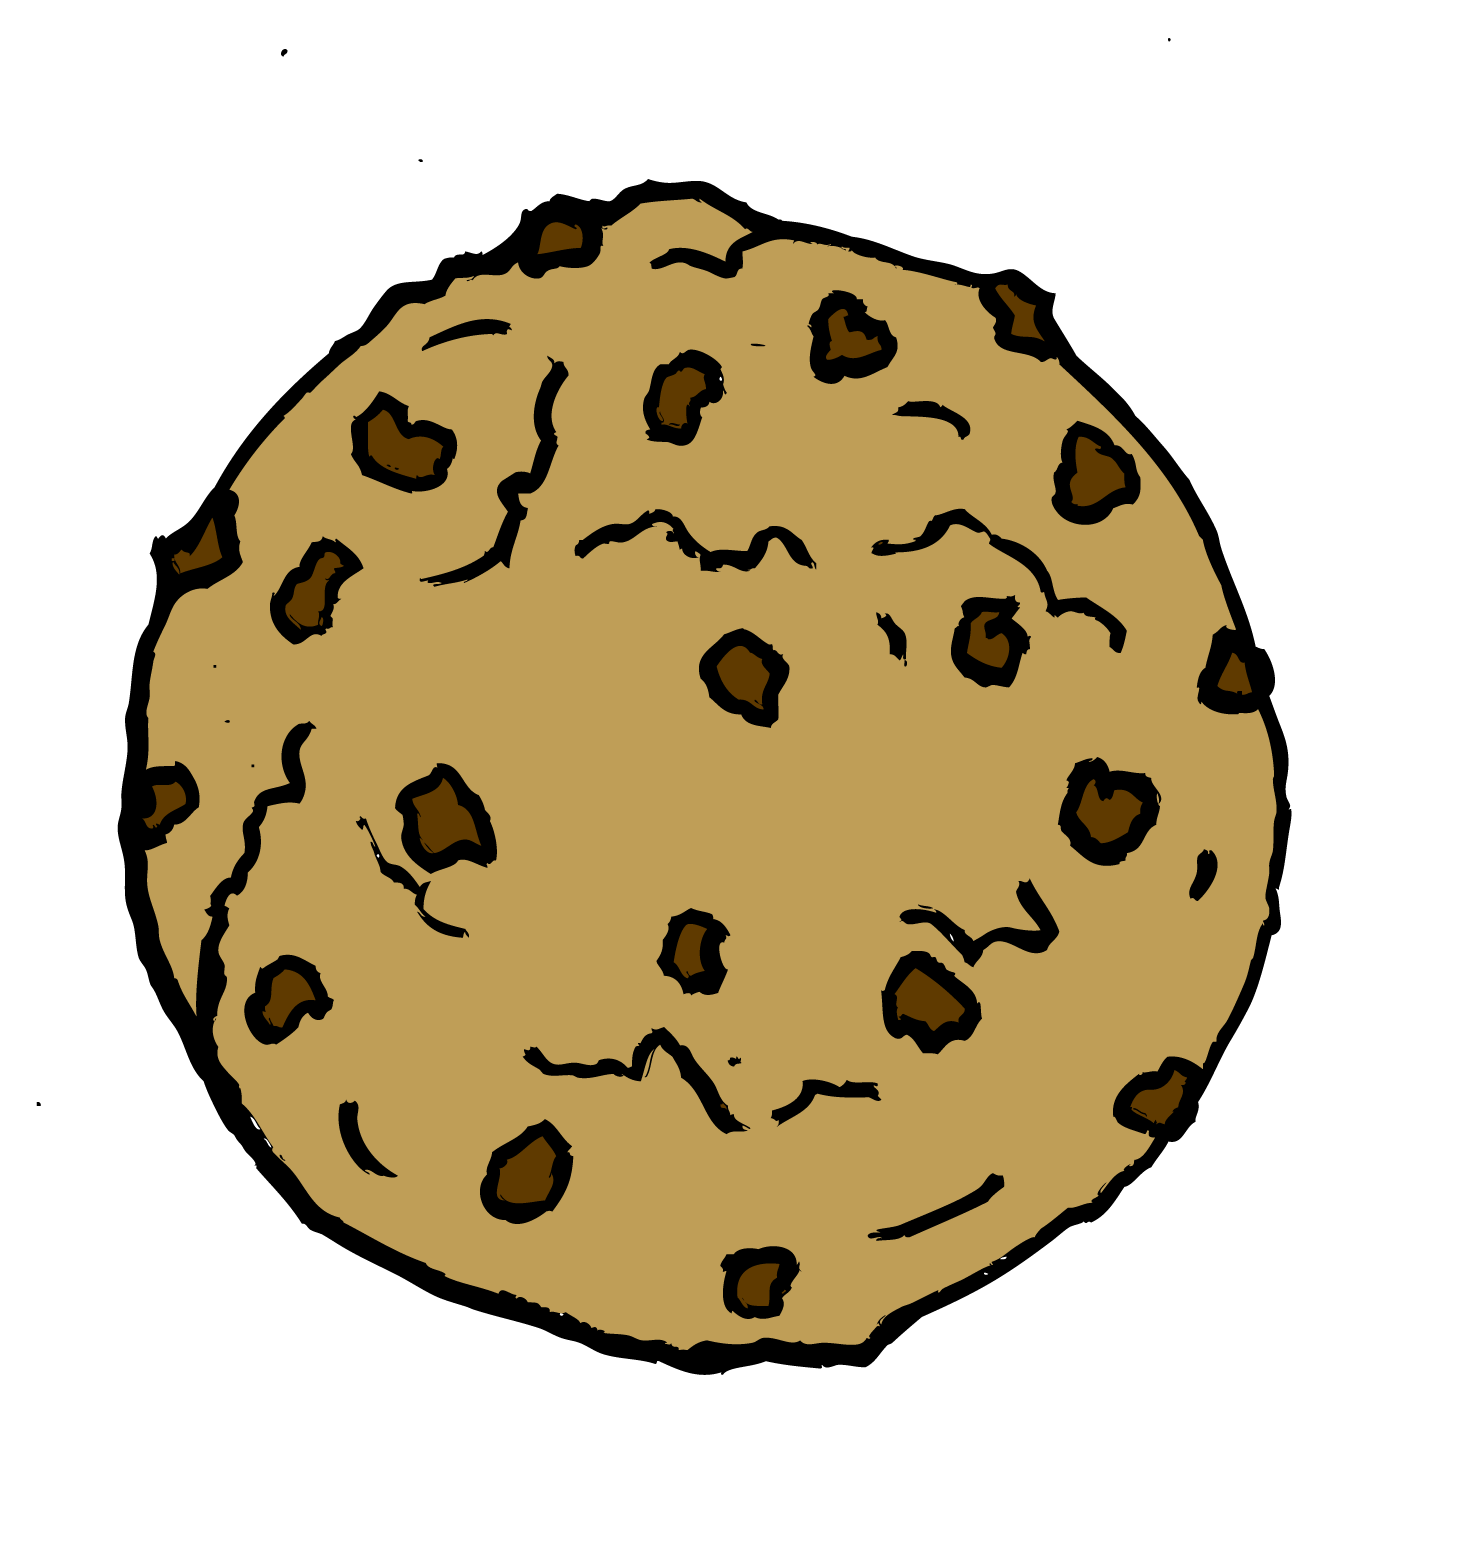 Chocolate Chip Cookie Clip Art | Clipart Panda - Free ...